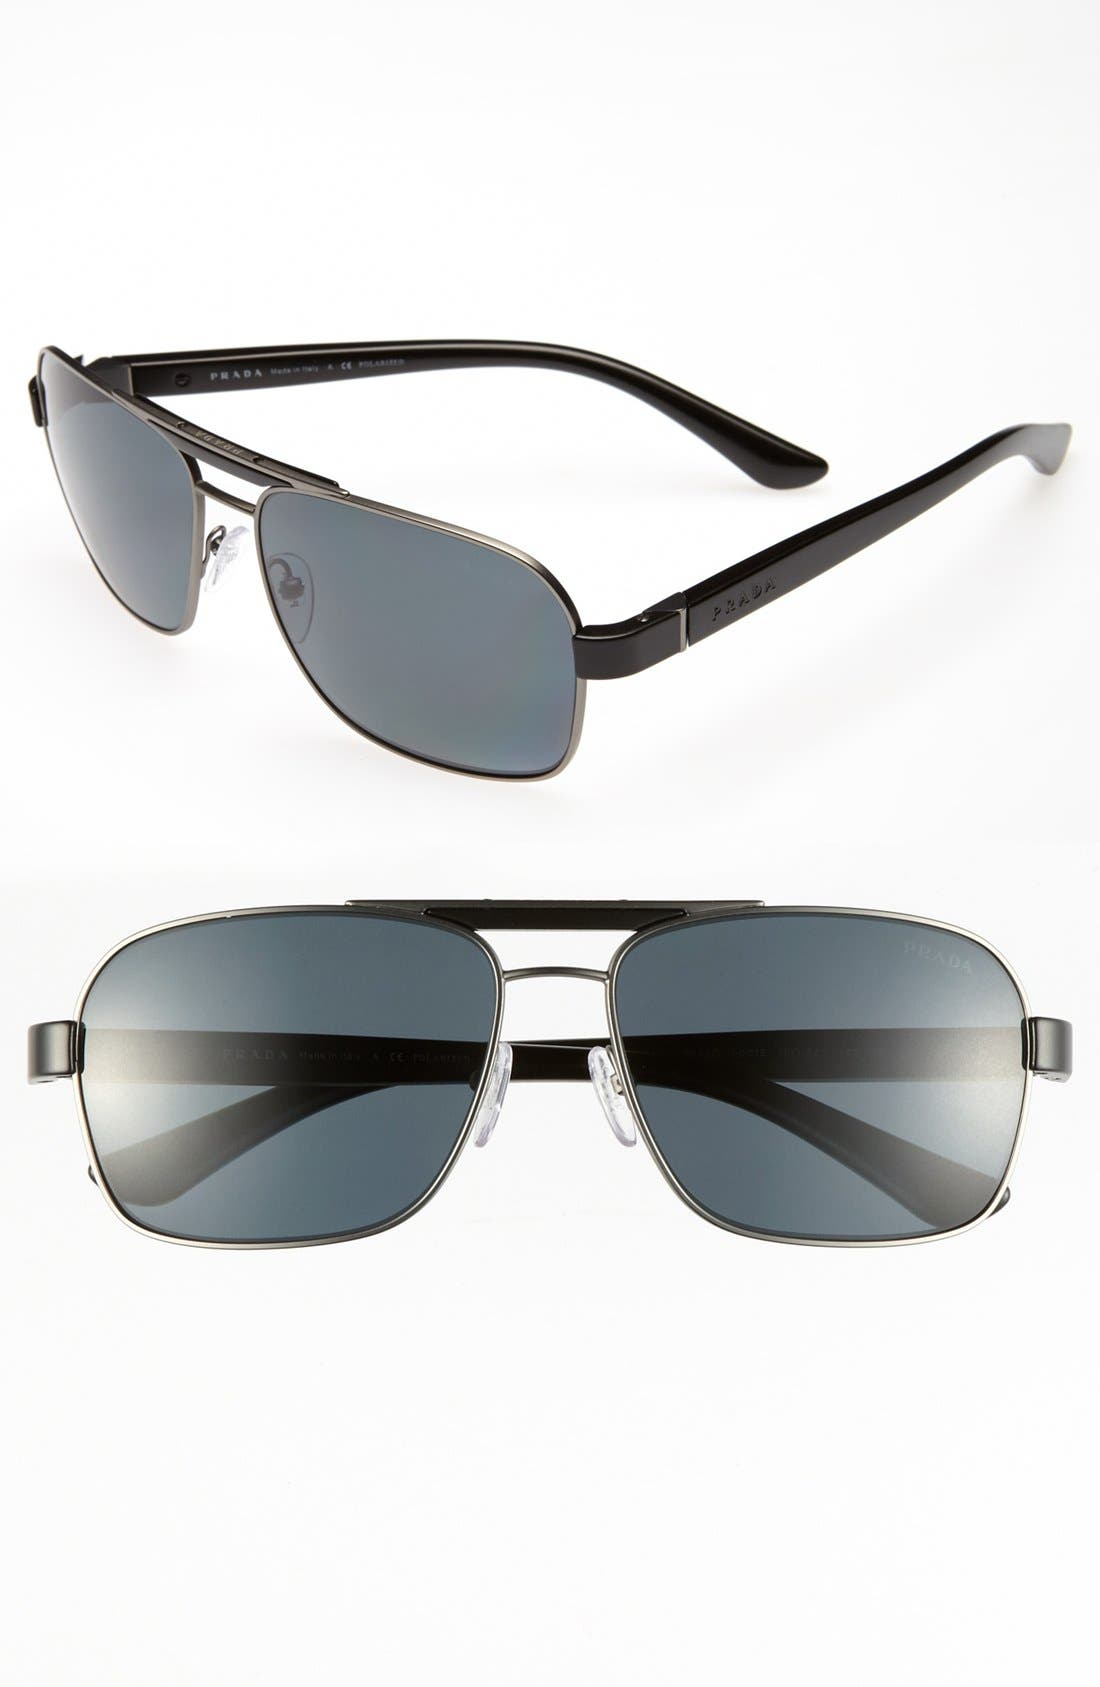 Main Image - Prada 60mm Polarized Retro Sunglasses